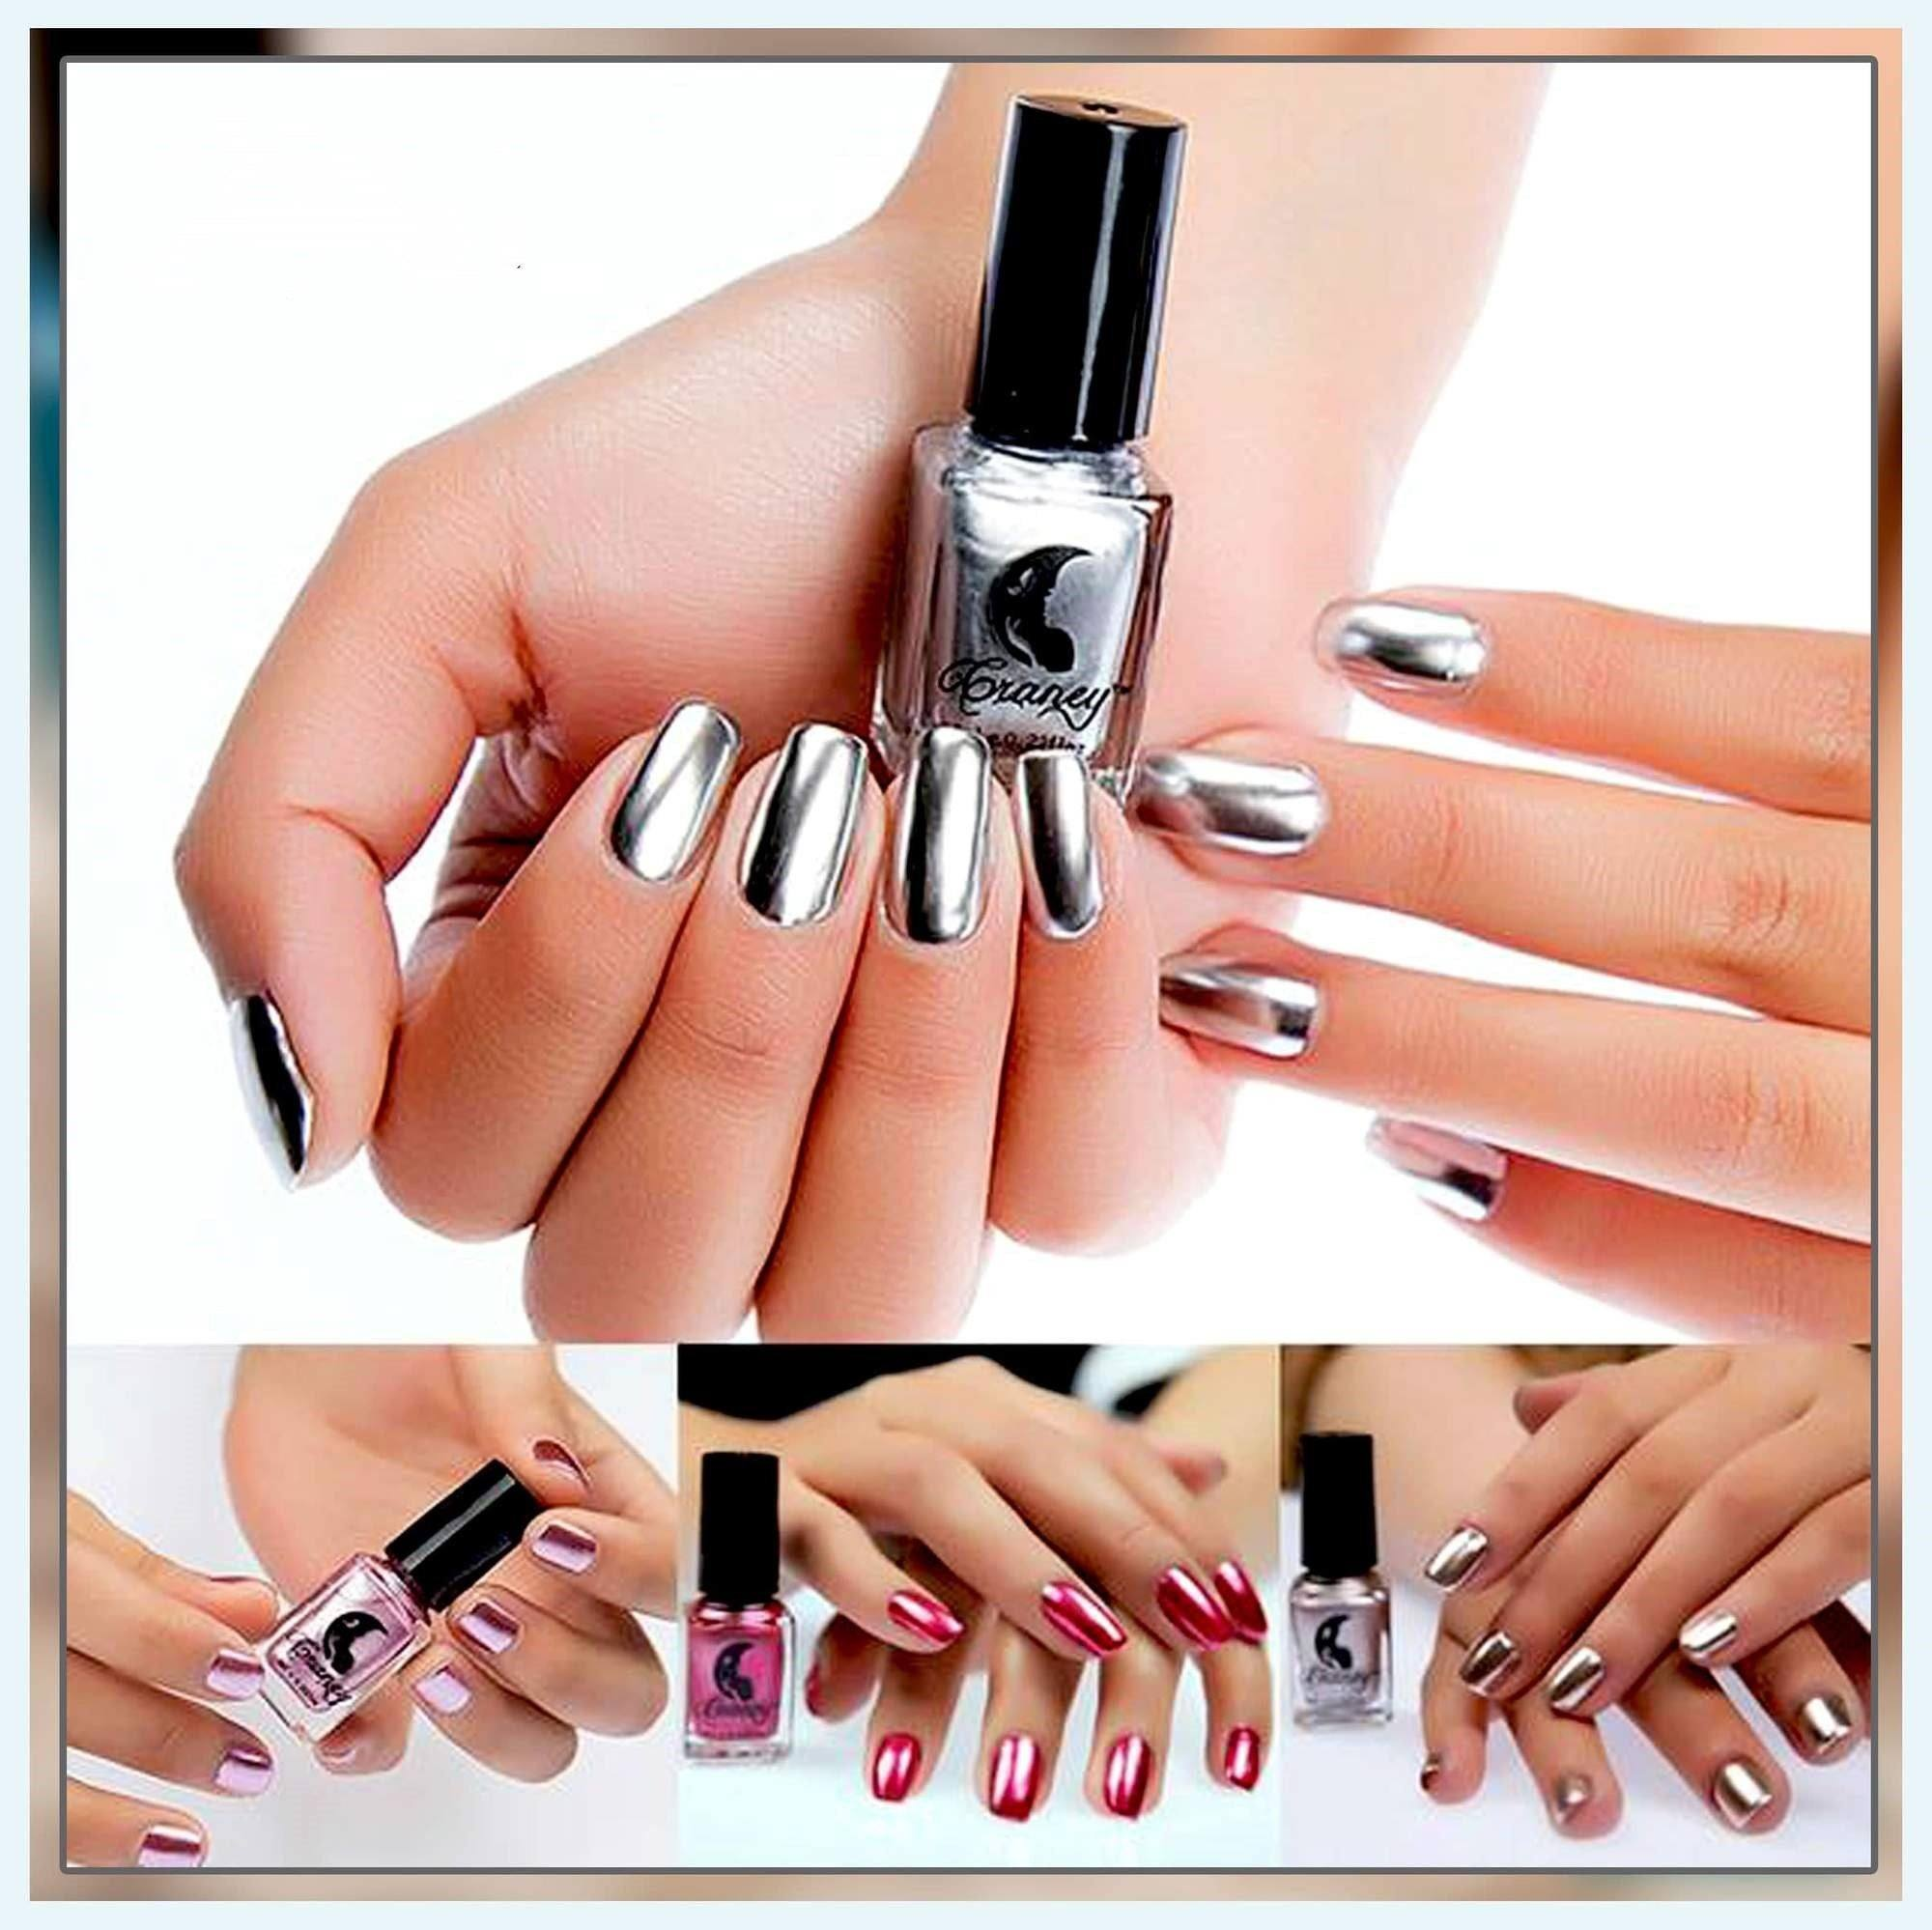 METALLIC NAIL POLISH Fonsany